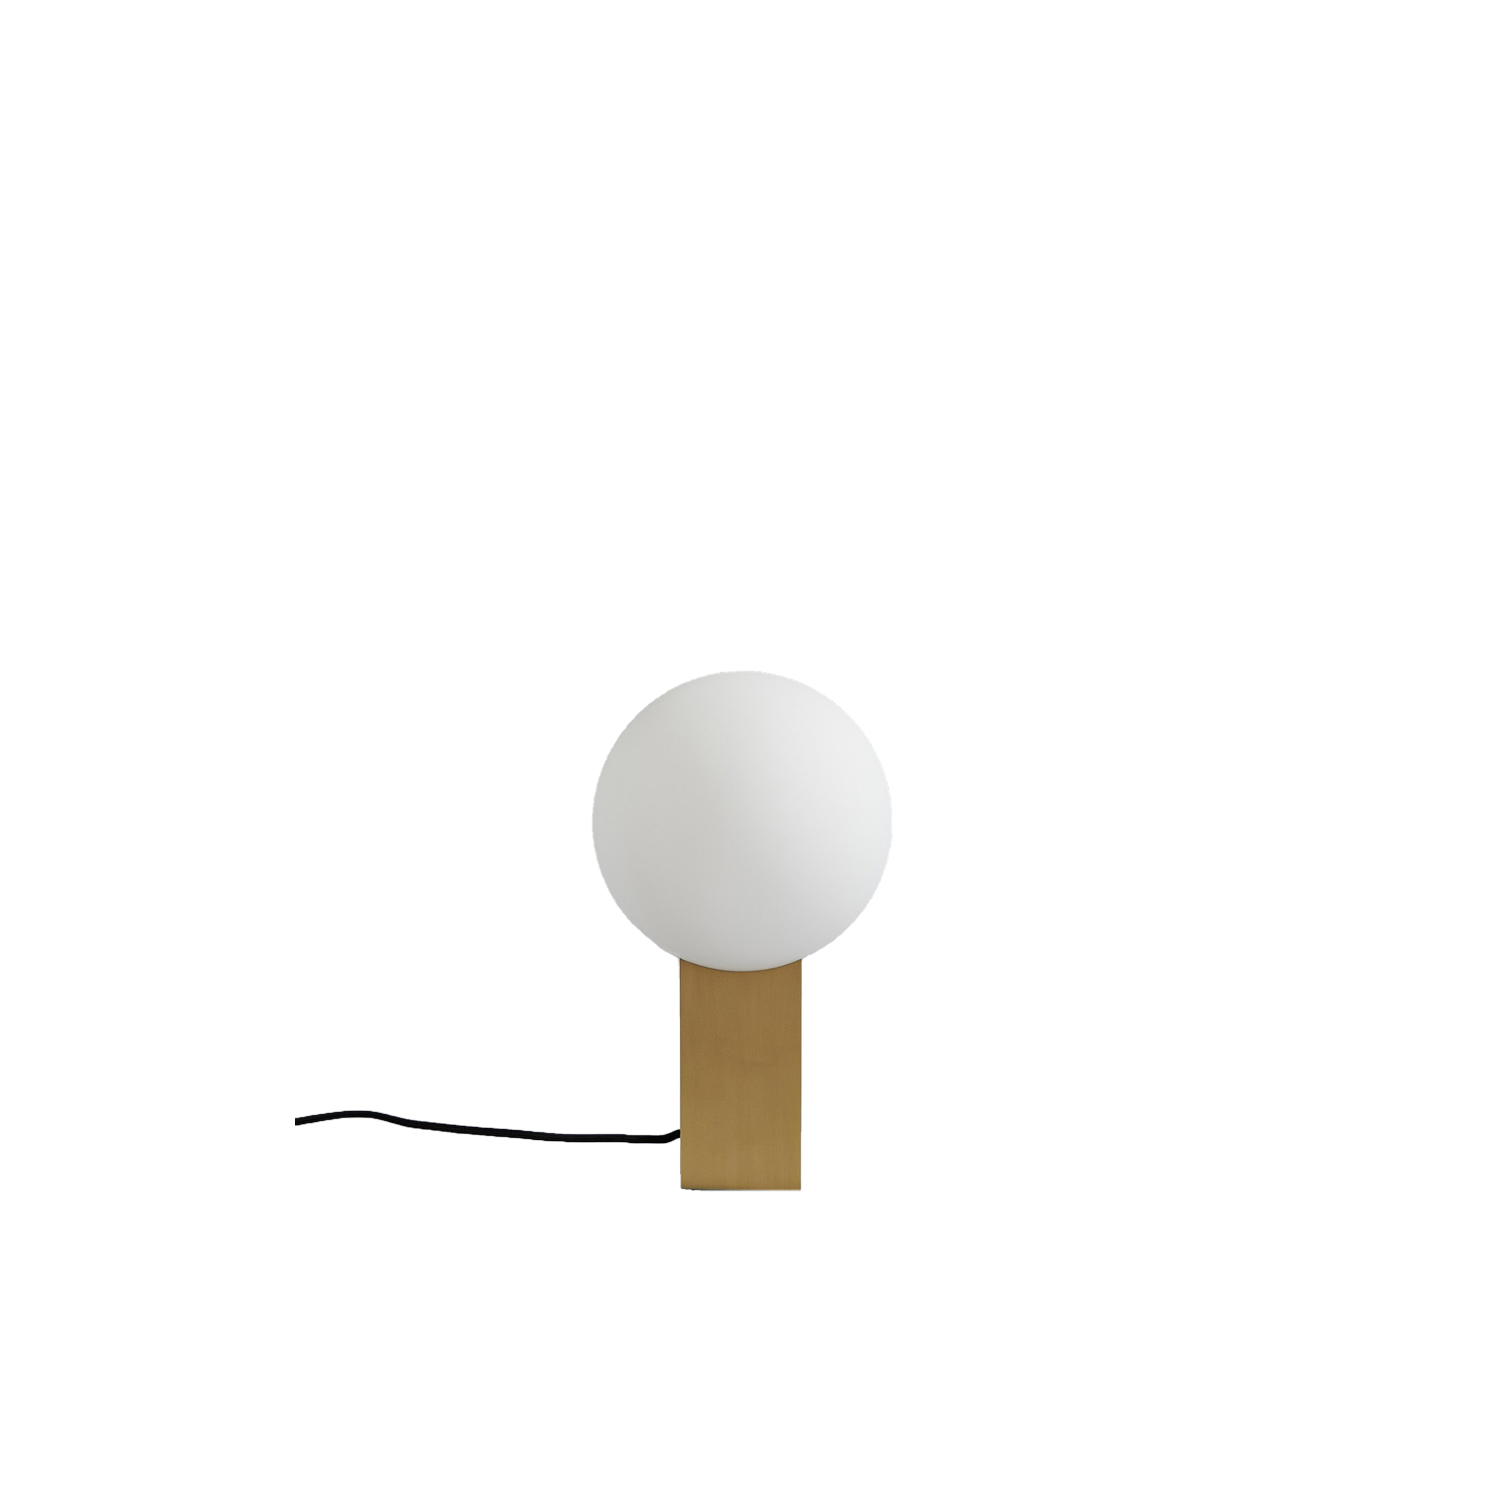 Hoop Table Lamp - So simple, yet so sophisticated and uncompromised. It is hard to believe that a simple shape can create a stunning and art like lamp, but the Hoop series gives you just this with an almost naive essence of geometry and form.   The silhouette itself can light up even the darkest places and by offering the Hoop lamps in both brass and bronze it is possible to create two unique atmospheres with the same lamp.  | Matter of Stuff